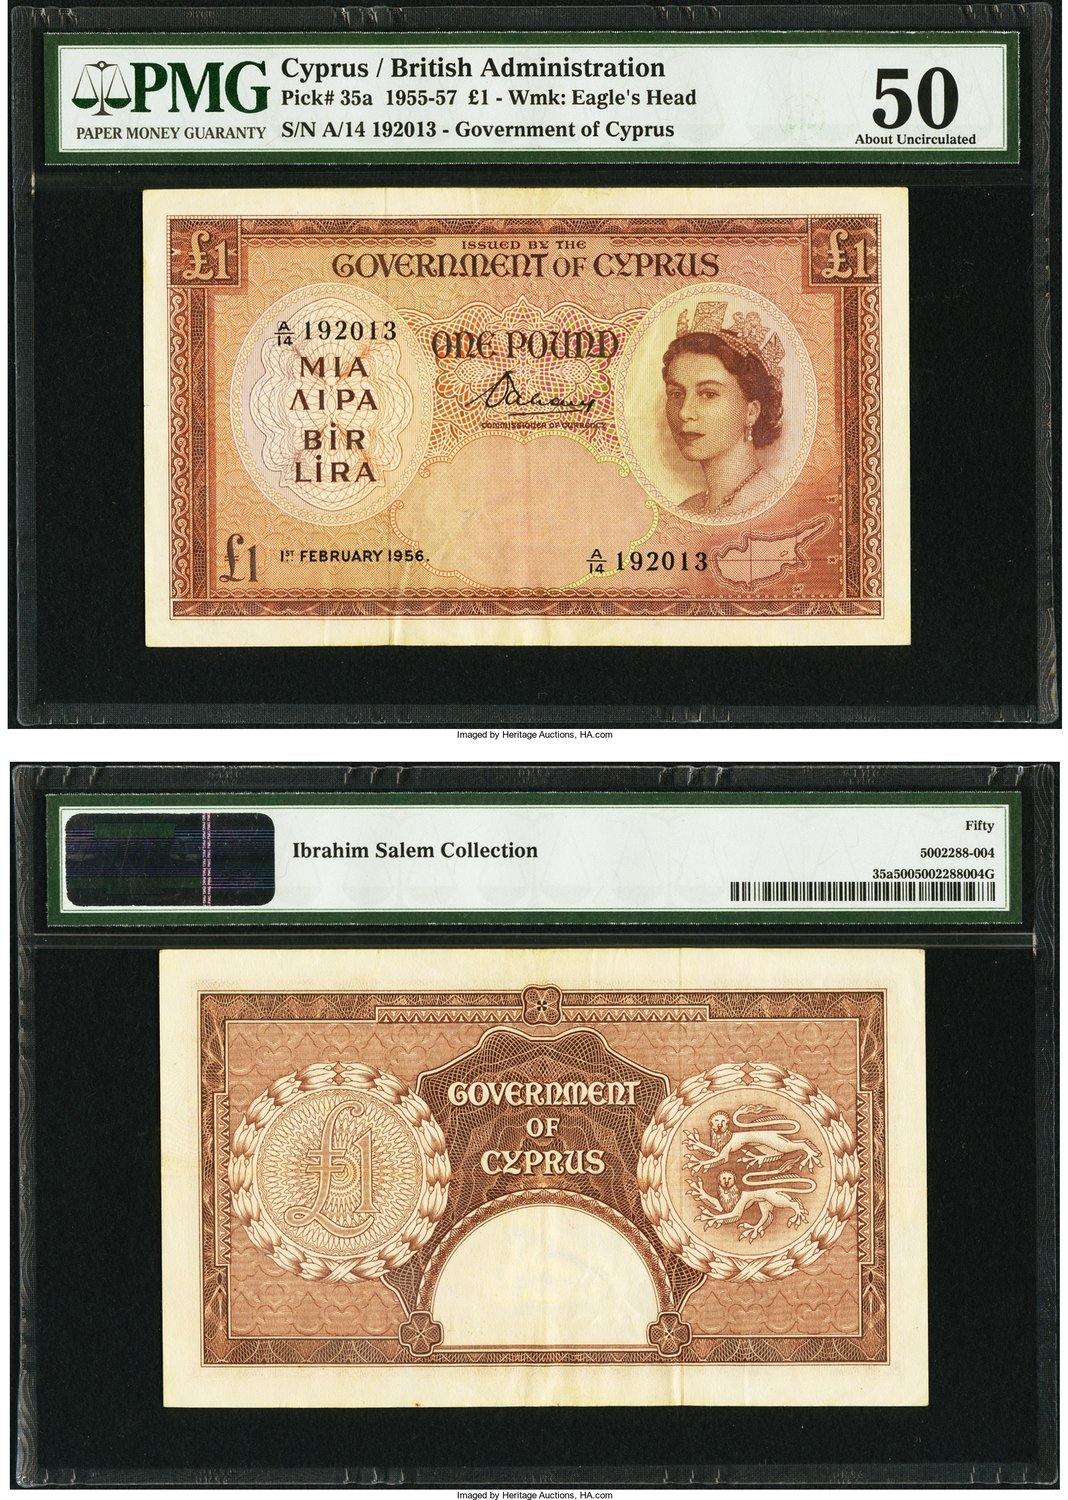 World Currency Cyprus Government Of 1 2 1956 Pick 35a Each Subsequent Date The 1950s Notes Were